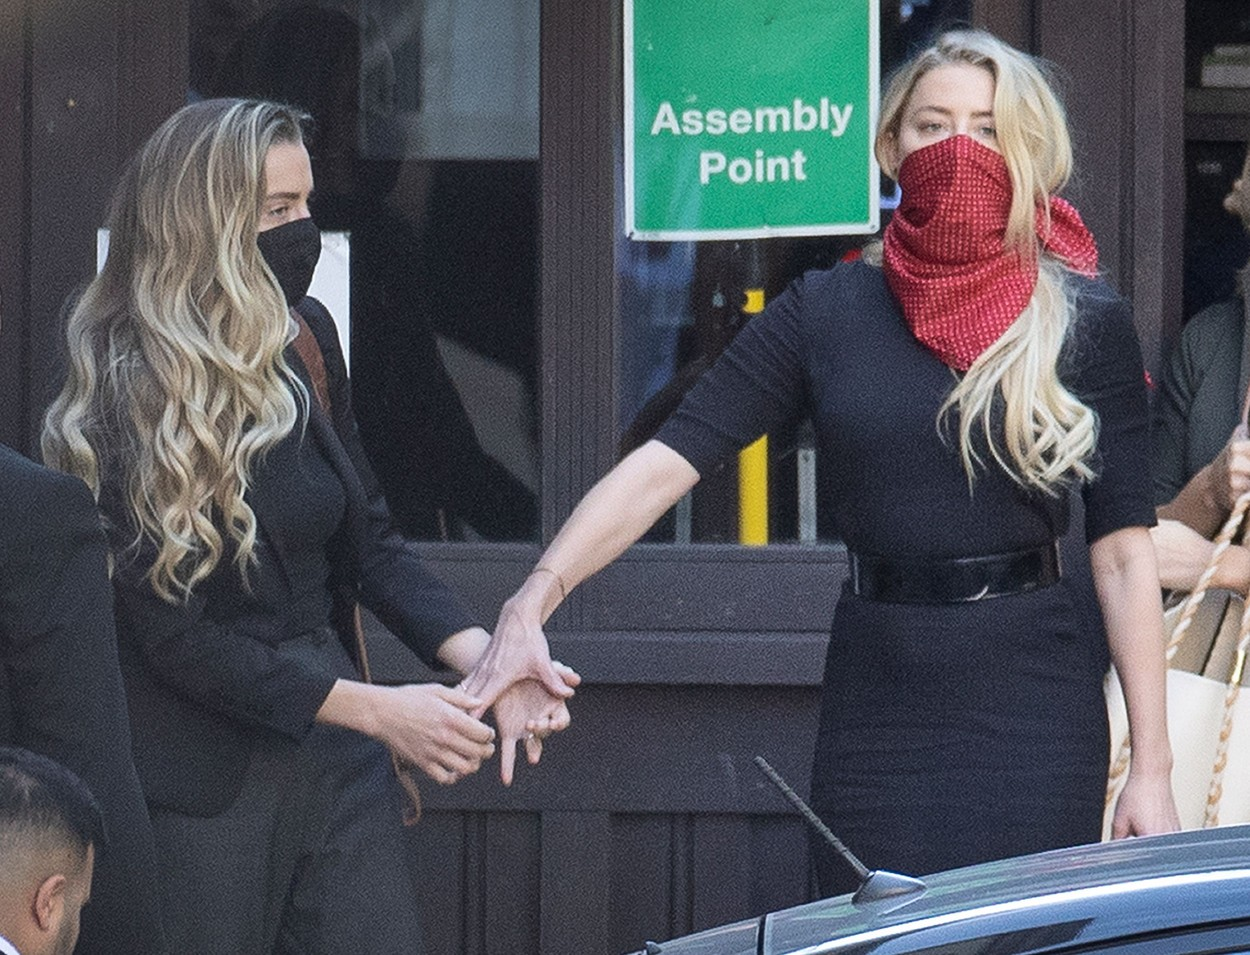 US actor Amber Heard (red facemask) arrives at The High Court in Central London with her sister Whitney Heard. Johnny Depp's libel trial against The Sun newspaper is due to take place over the next three weeks over allegations he was violent and abusive towards his ex-wife Amber Heard. Johnny Depp libel case, London, UK - 07 Jul 2020,Image: 540928461, License: Rights-managed, Restrictions: , Model Release: no, Credit line: Peter MacDiarmid / Shutterstock Editorial / Profimedia